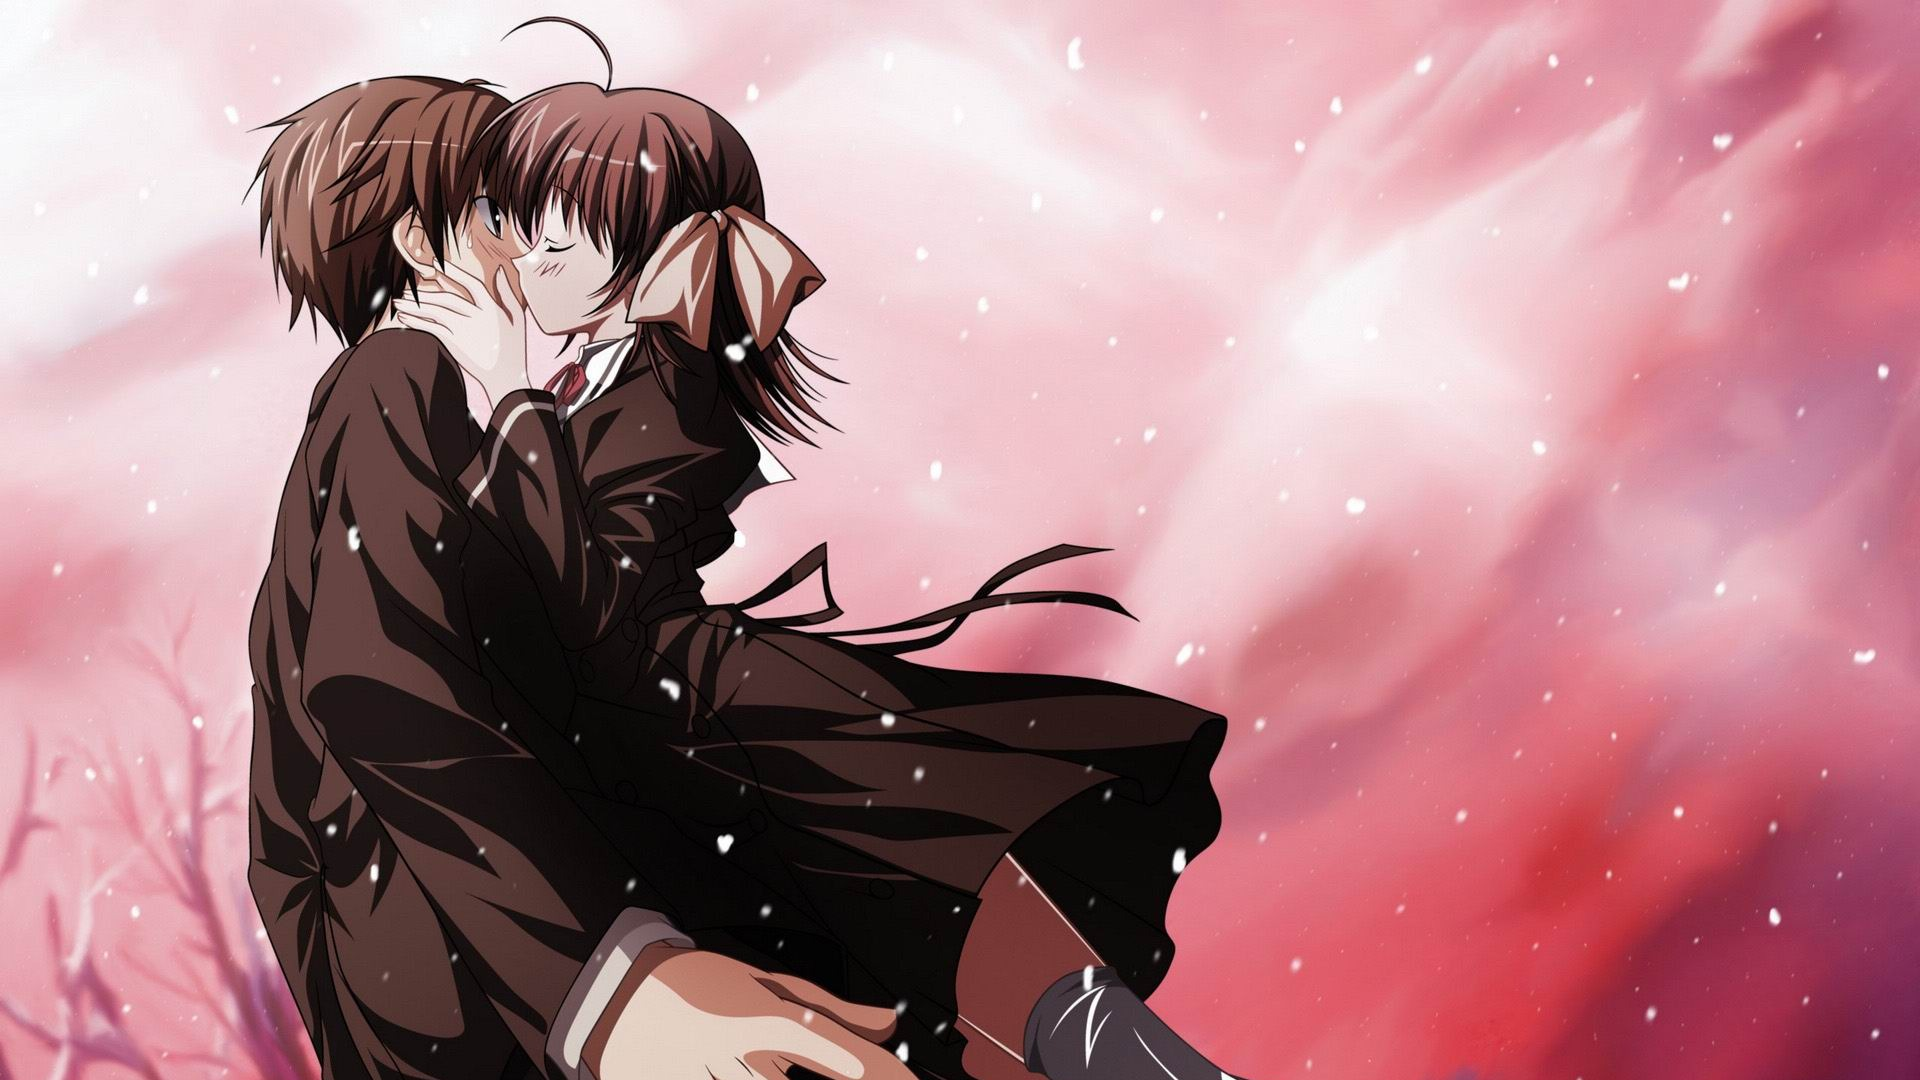 Cute anime couples 27578 1920x1080 px hdwallsource cute anime couples 27578 voltagebd Image collections